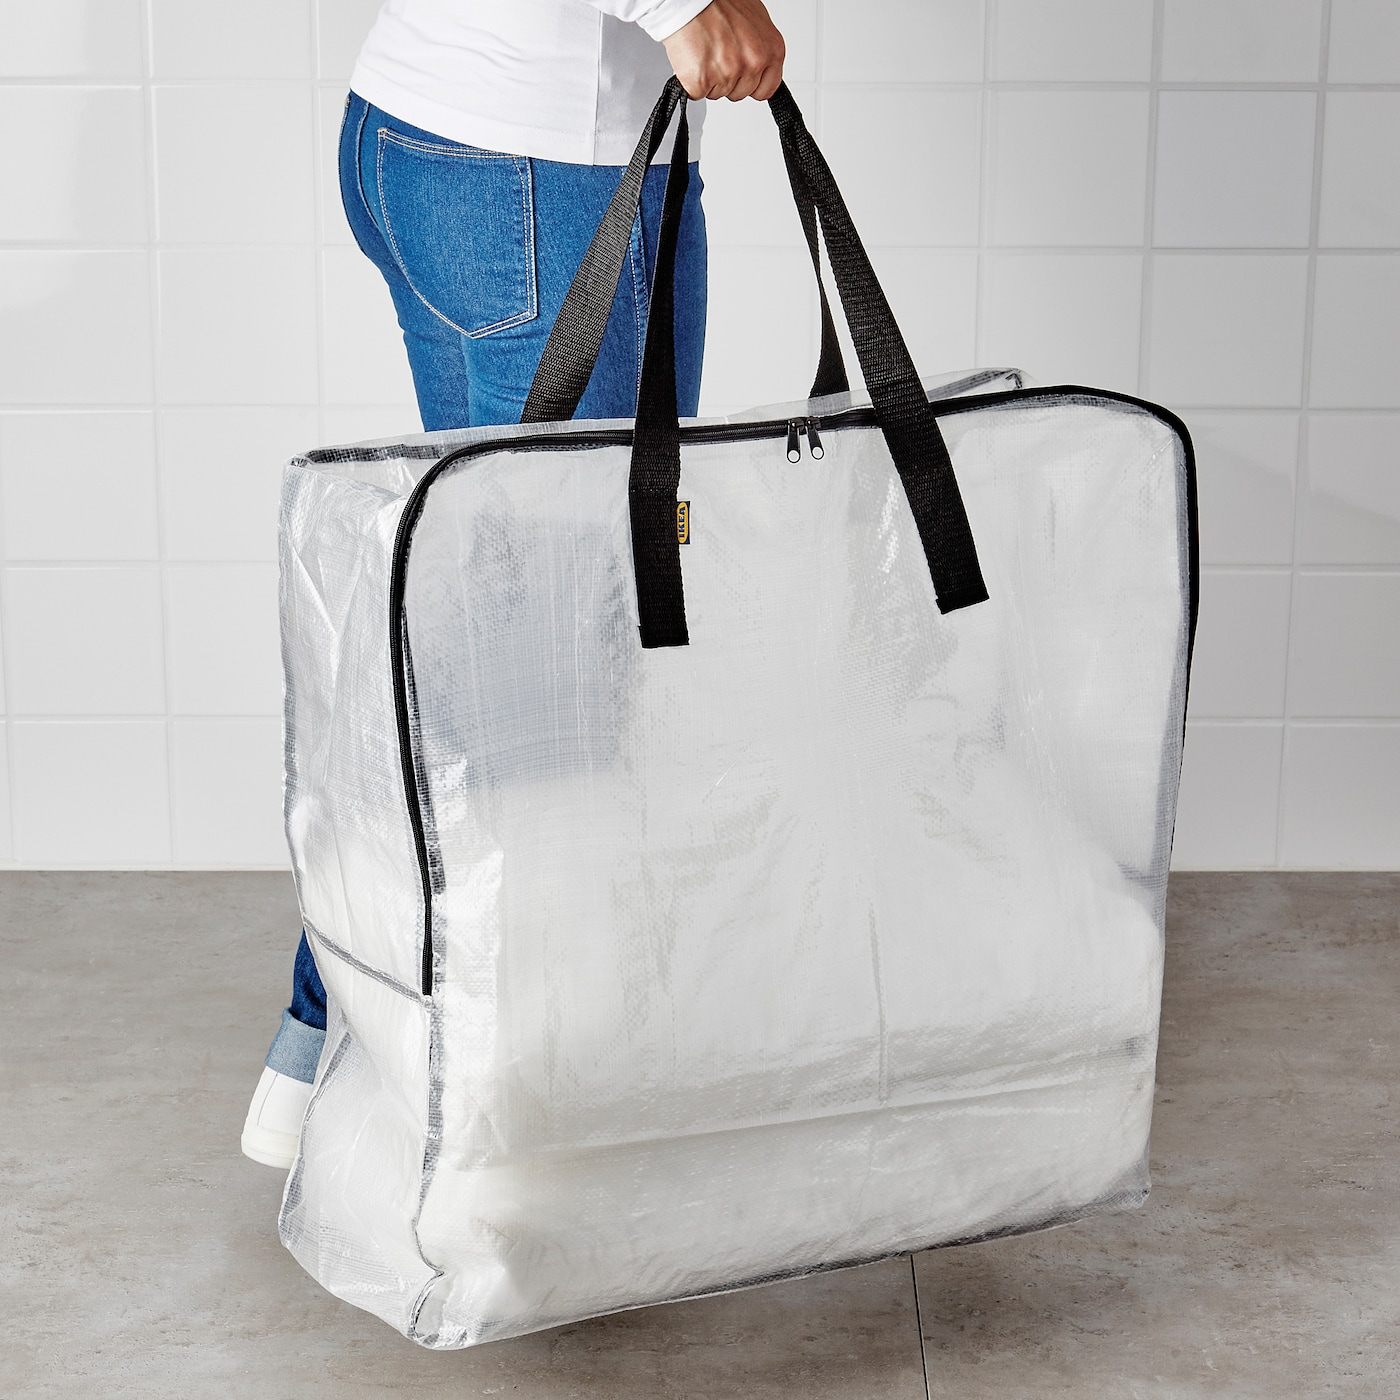 IKEA DIMPA STORAGE BAG CLEAR,PROTECTS CONTENTS AGAINST MOISTURE AND DIRT